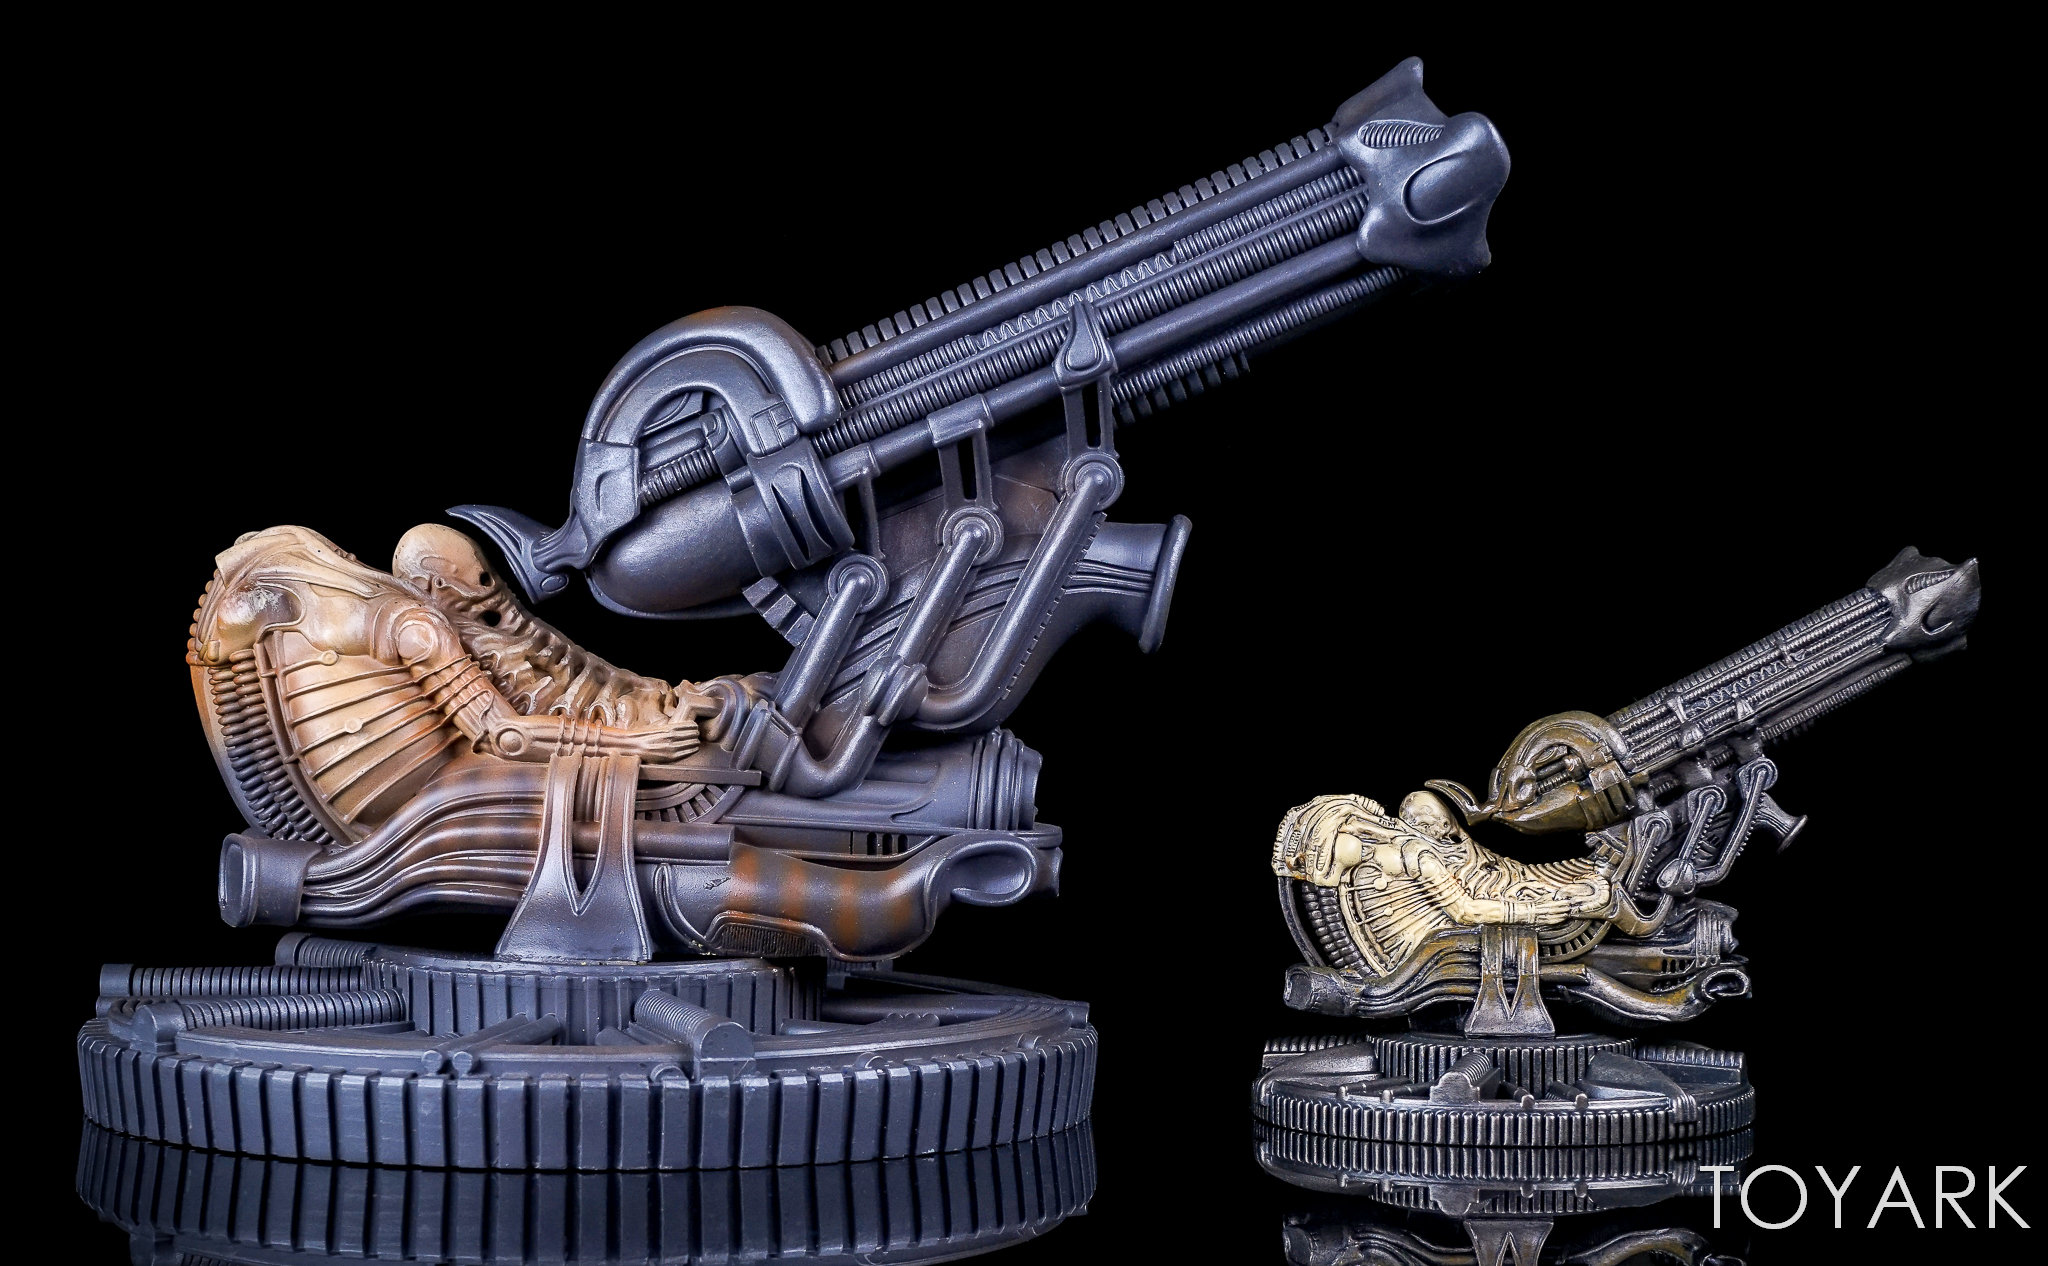 http://news.toyark.com/wp-content/uploads/sites/4/2017/11/Eaglemoss-Alien-Space-Jockey-019.jpg